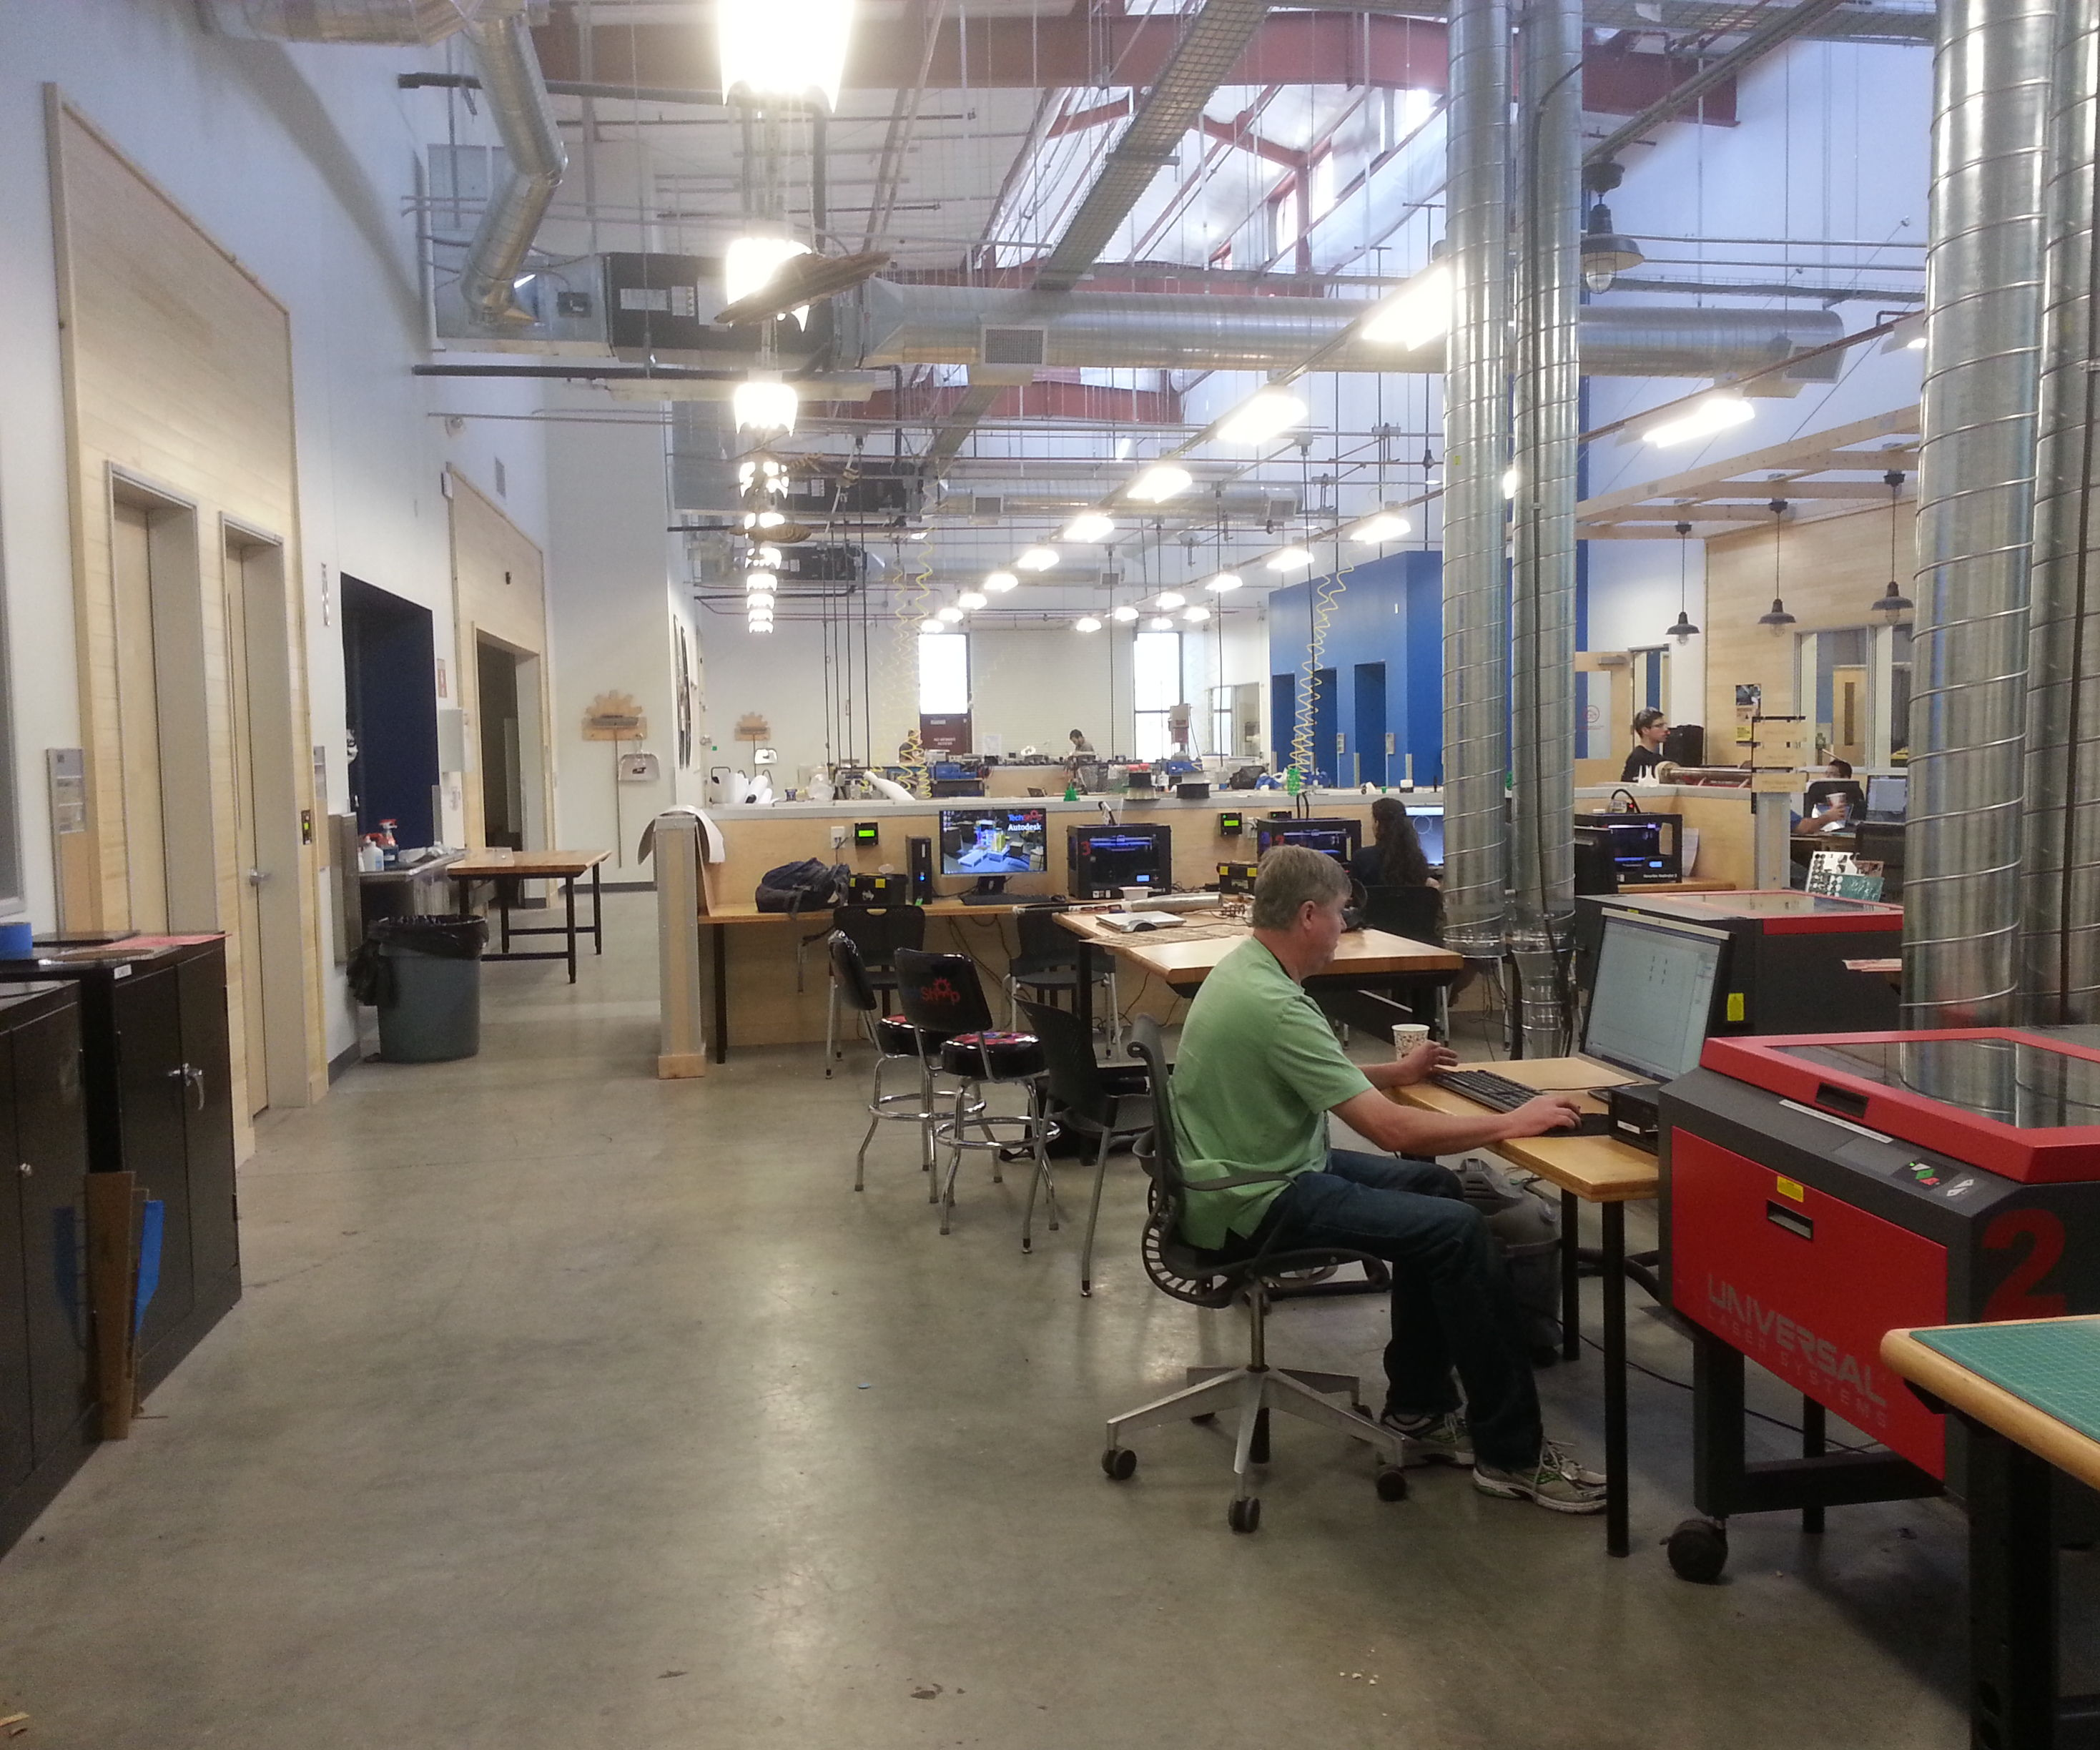 Every tool at techshop chandler